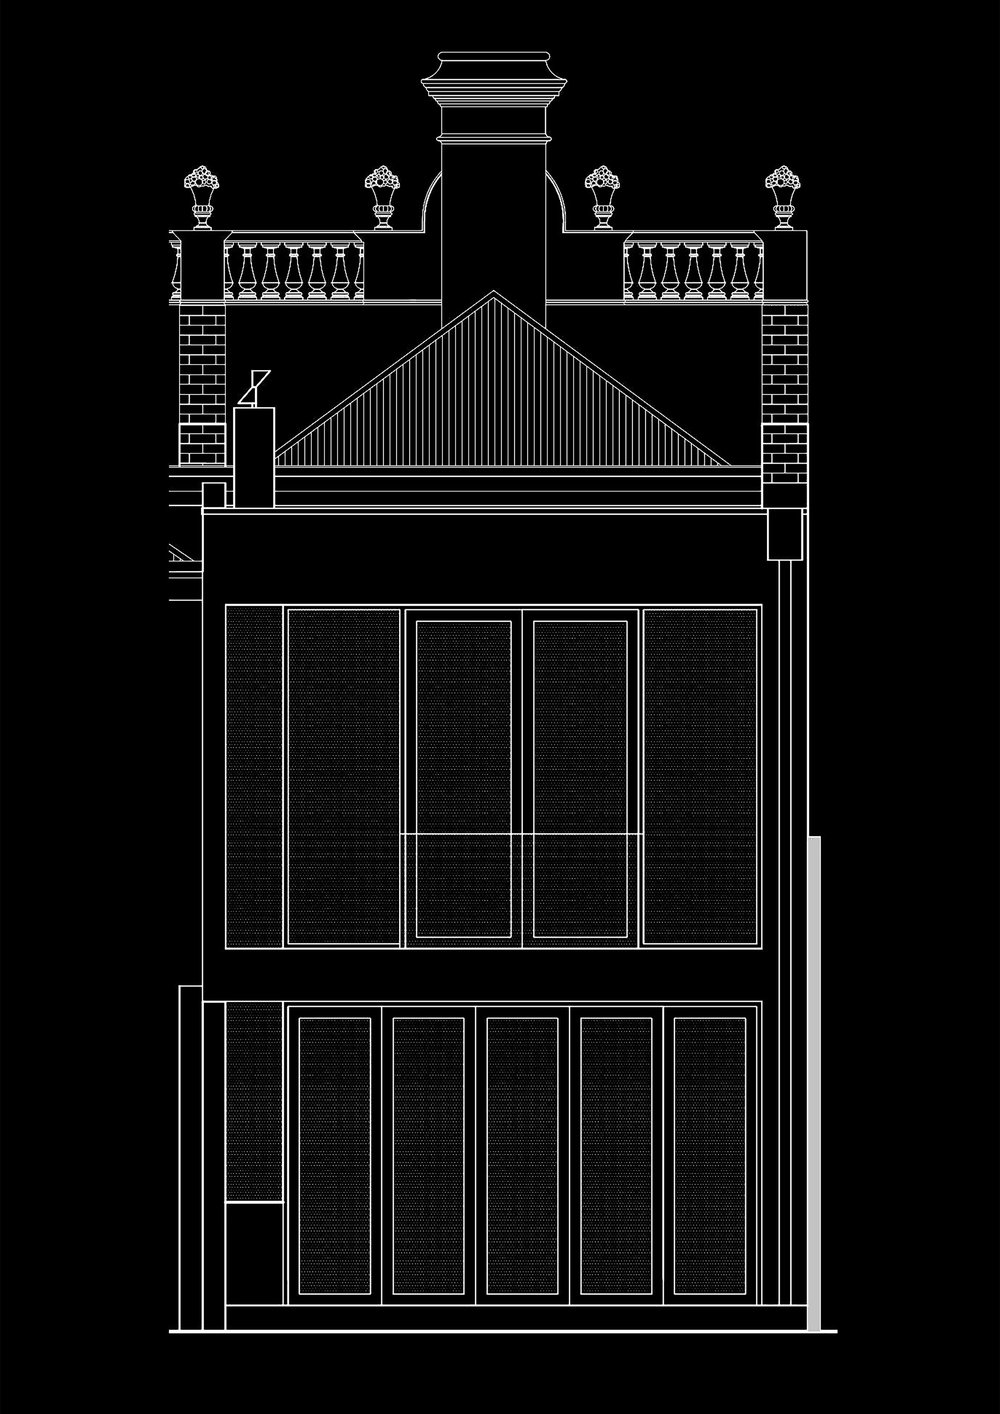 PROPOSED REAR EXTENSION FACADE